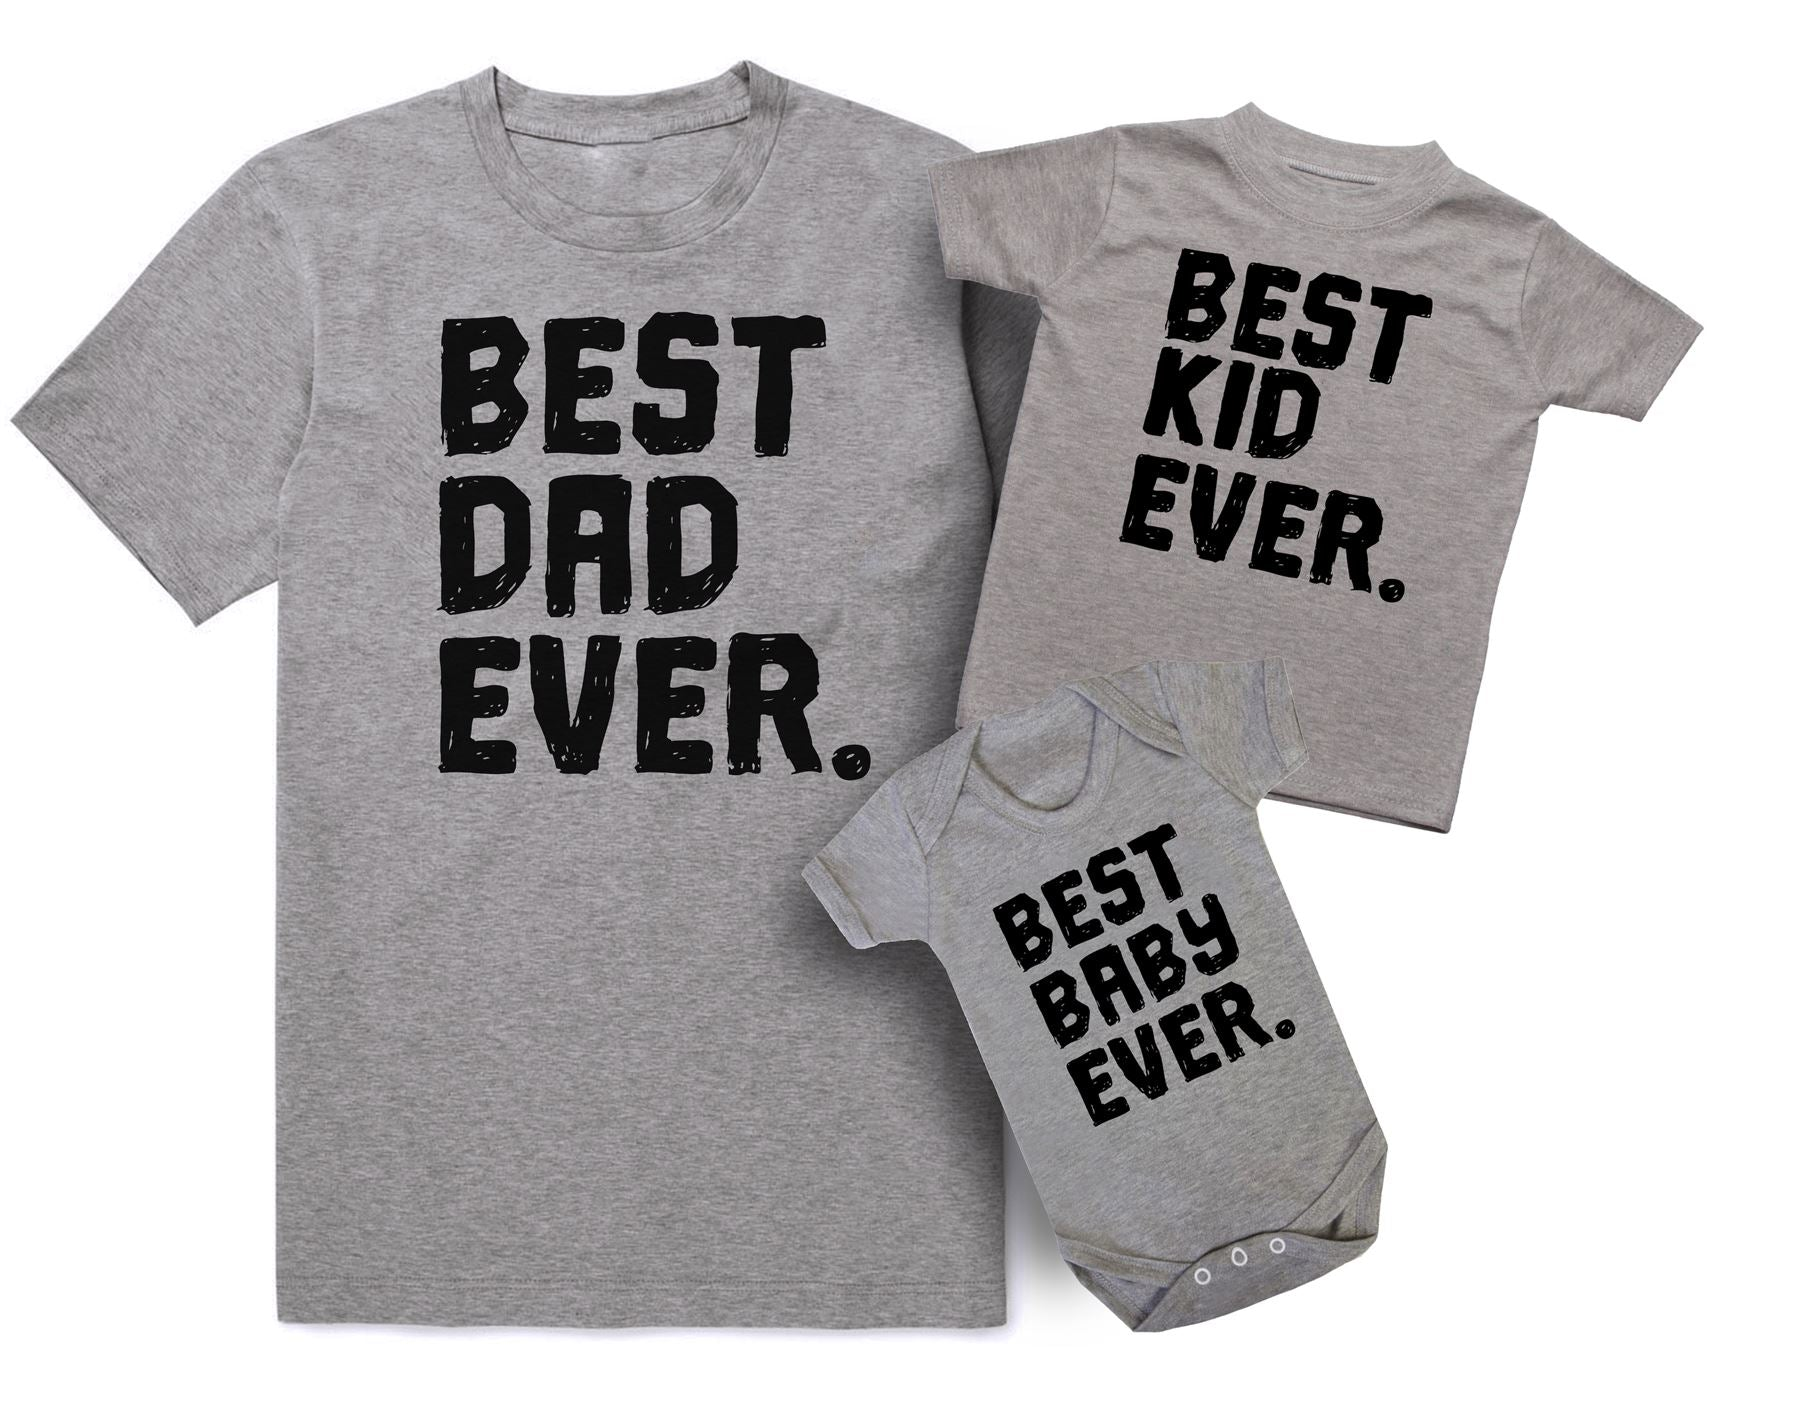 e55c7ad2f Best Dad Ever Best Kid Ever And Best Baby Ever Father and Baby Matching  Outfits